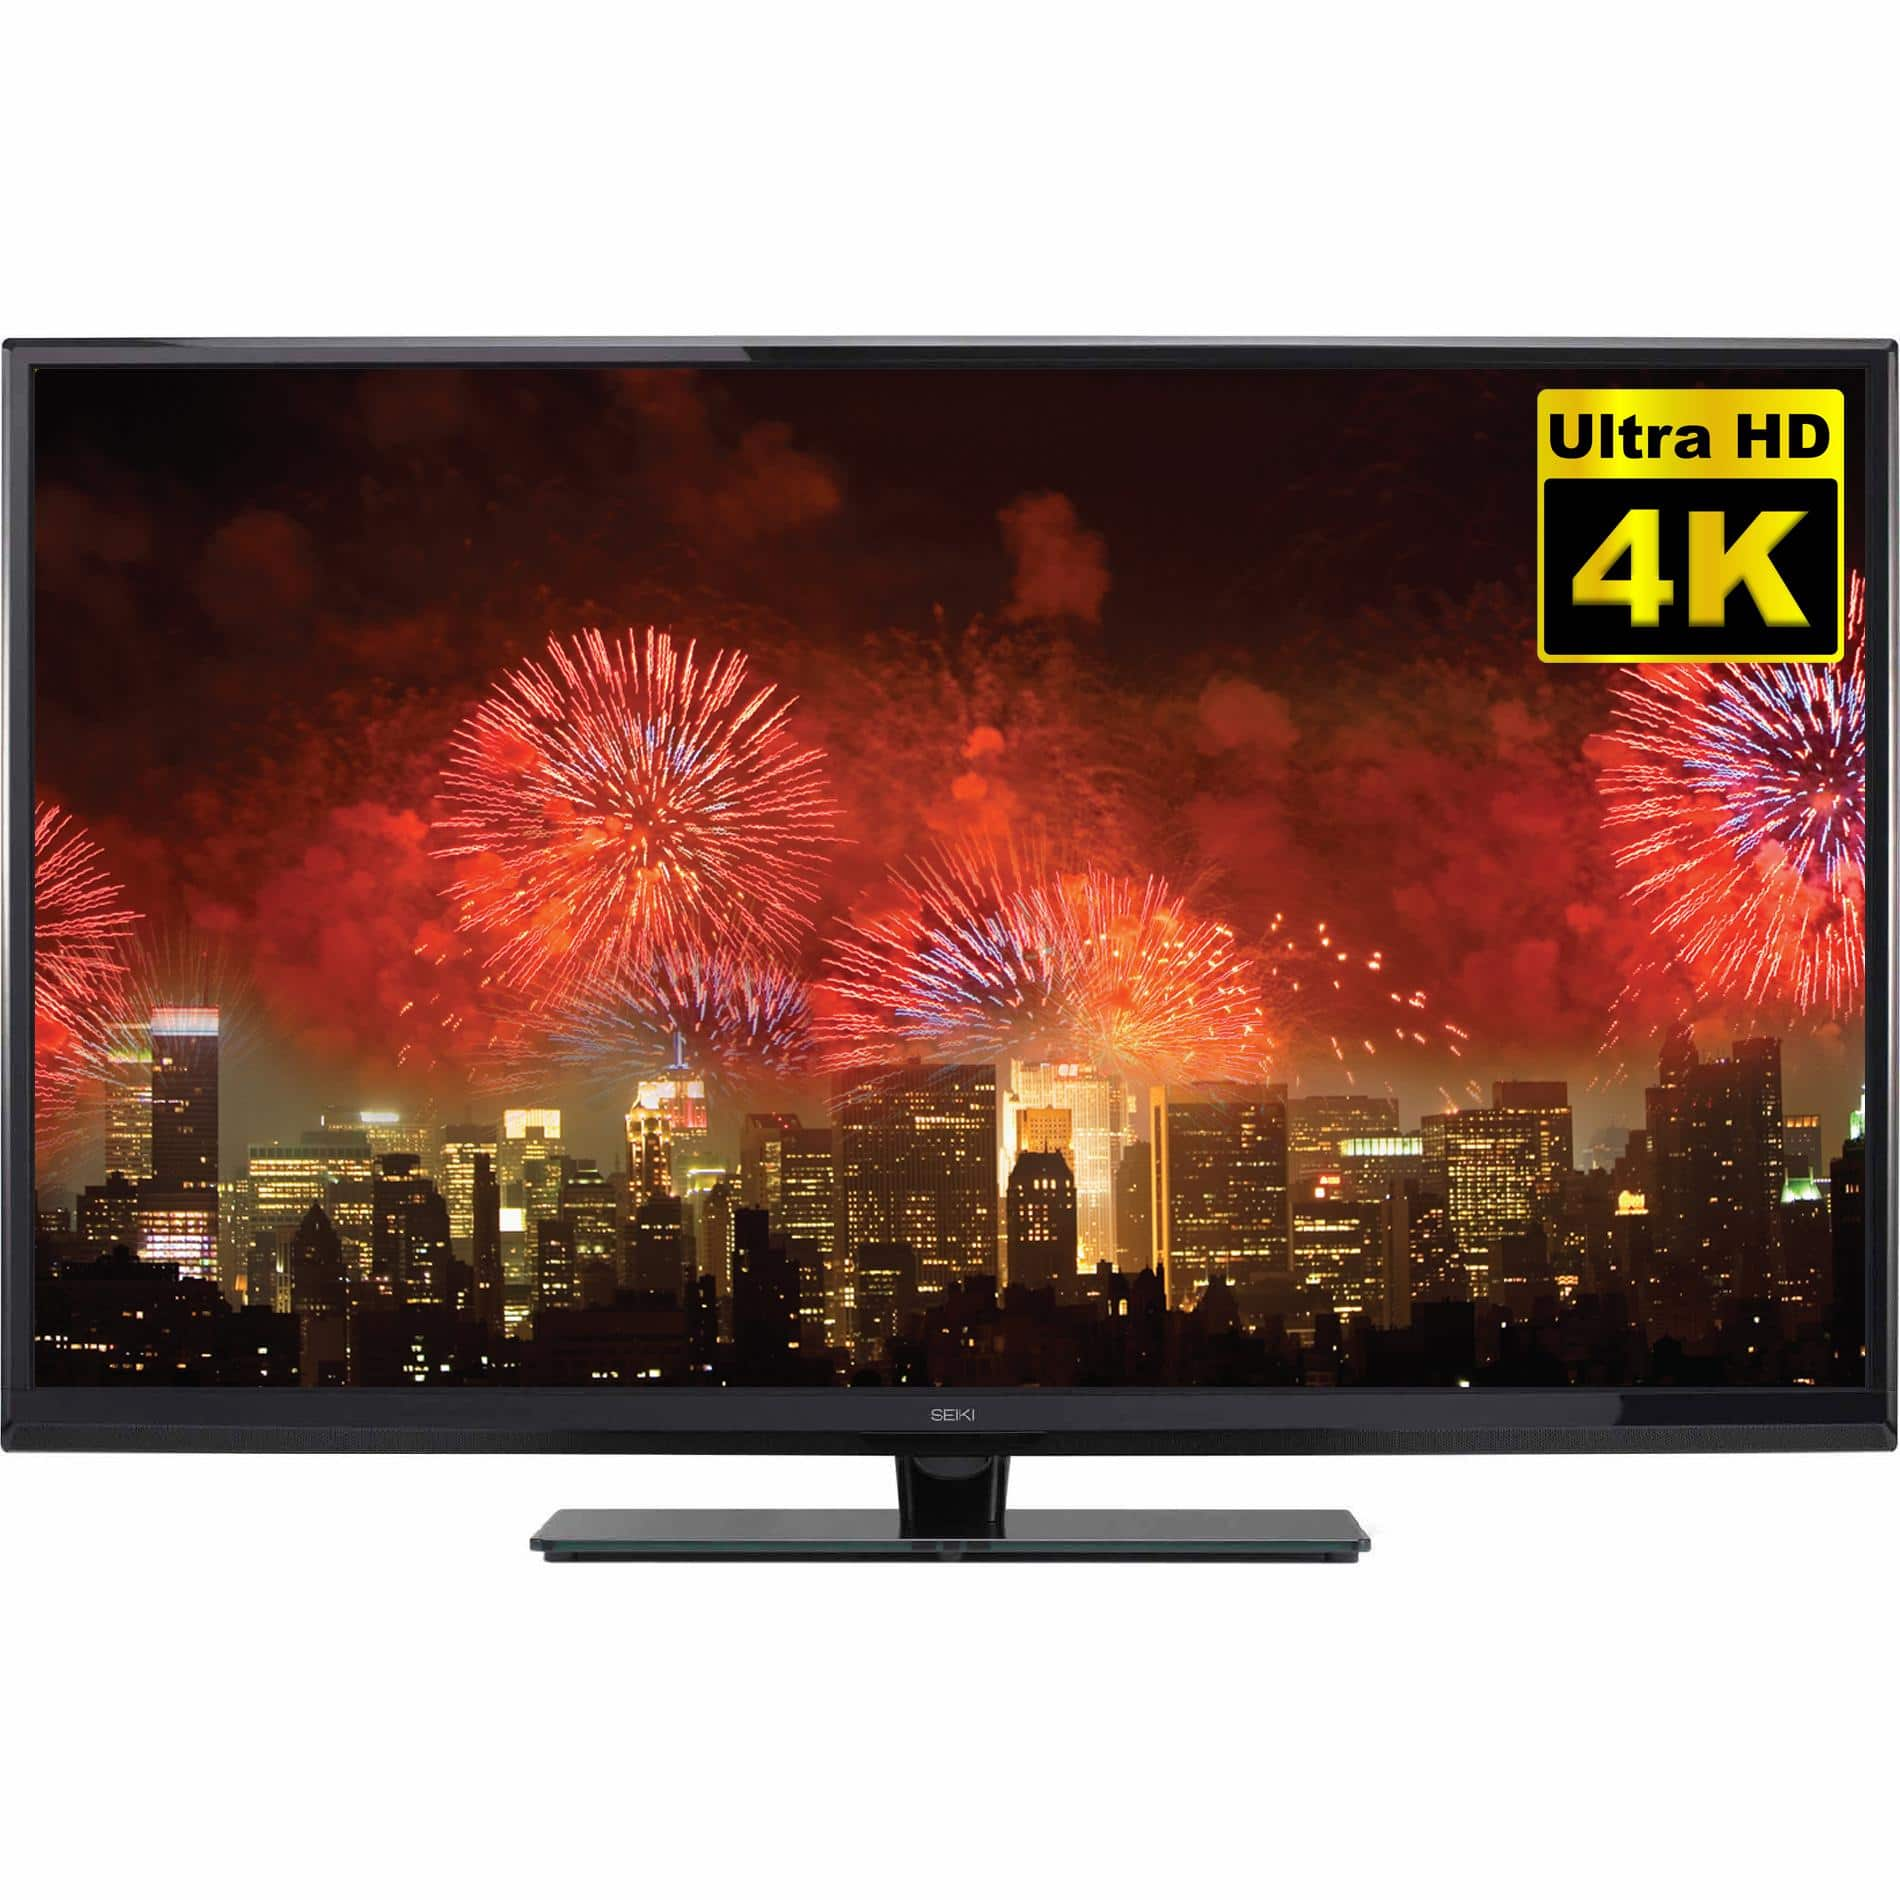 """Seiki  55"""" Class 4K 120Hz LED Ultra HDTV – SE55UY04 - Sears at $824 or $705/w Sears Card (Cheapper than BF @ $849)"""